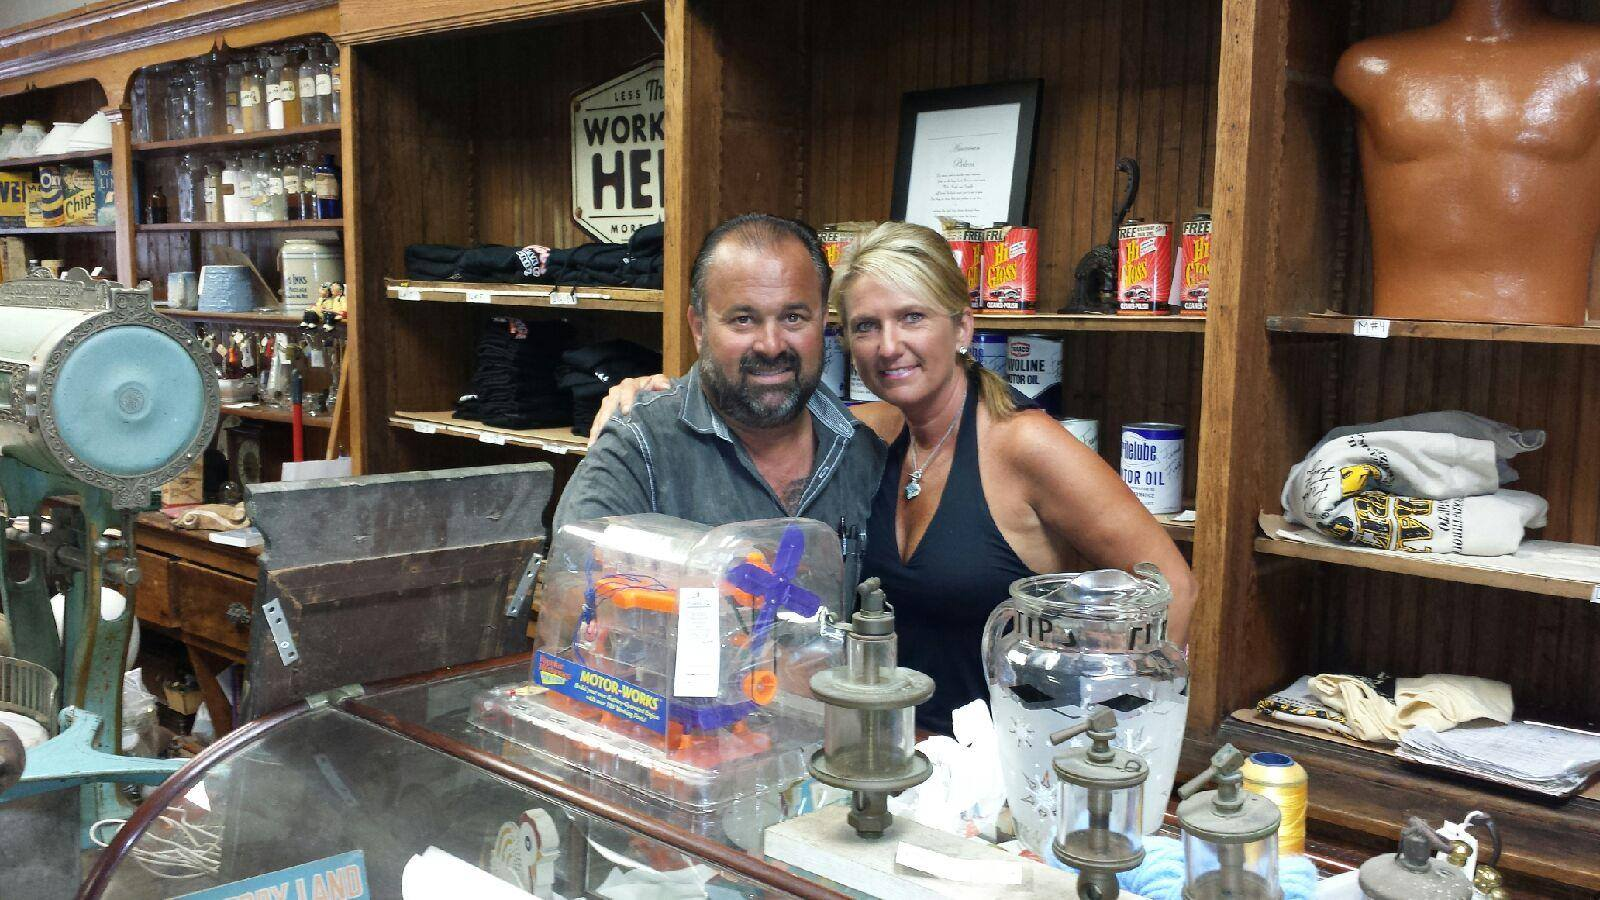 Frank Fritz and his girlfriend, Diann standing in the store